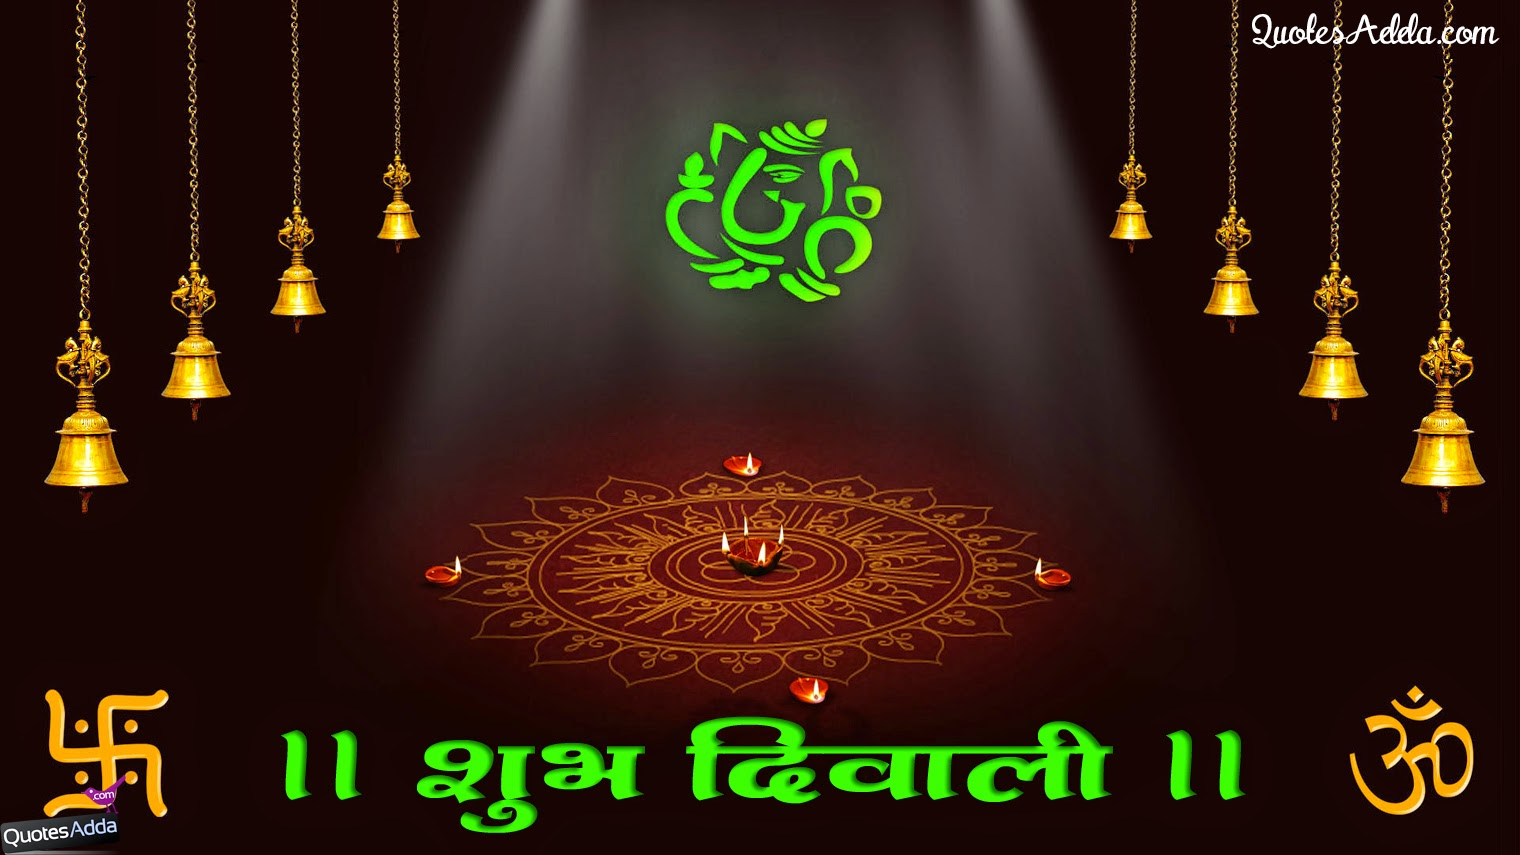 2016 subh diwali hindi wishes wallpapers quotesadda   telugu quotes tamil quotes hindi